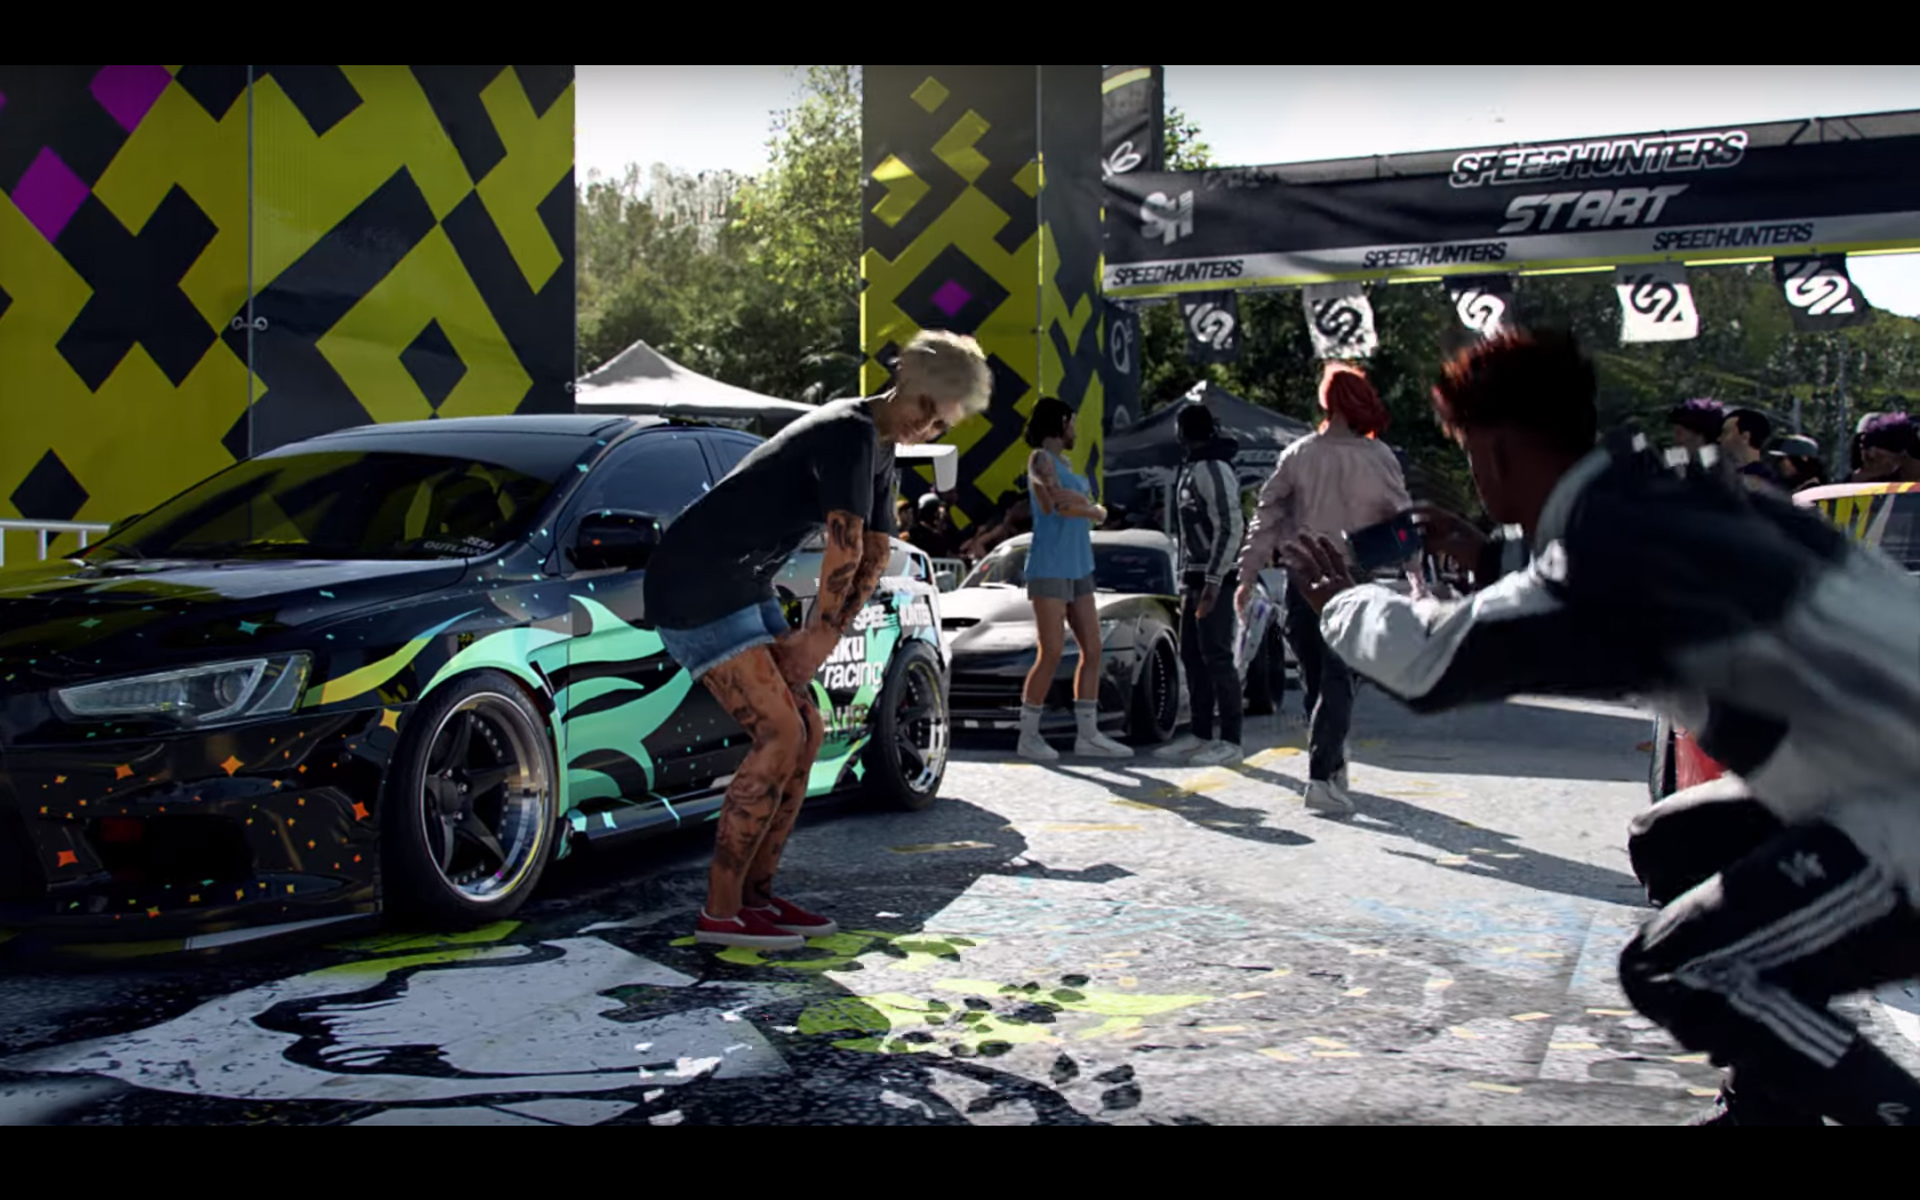 NFS-Heat-2019-screen-trailer-speedhunters-showdown-grid-start